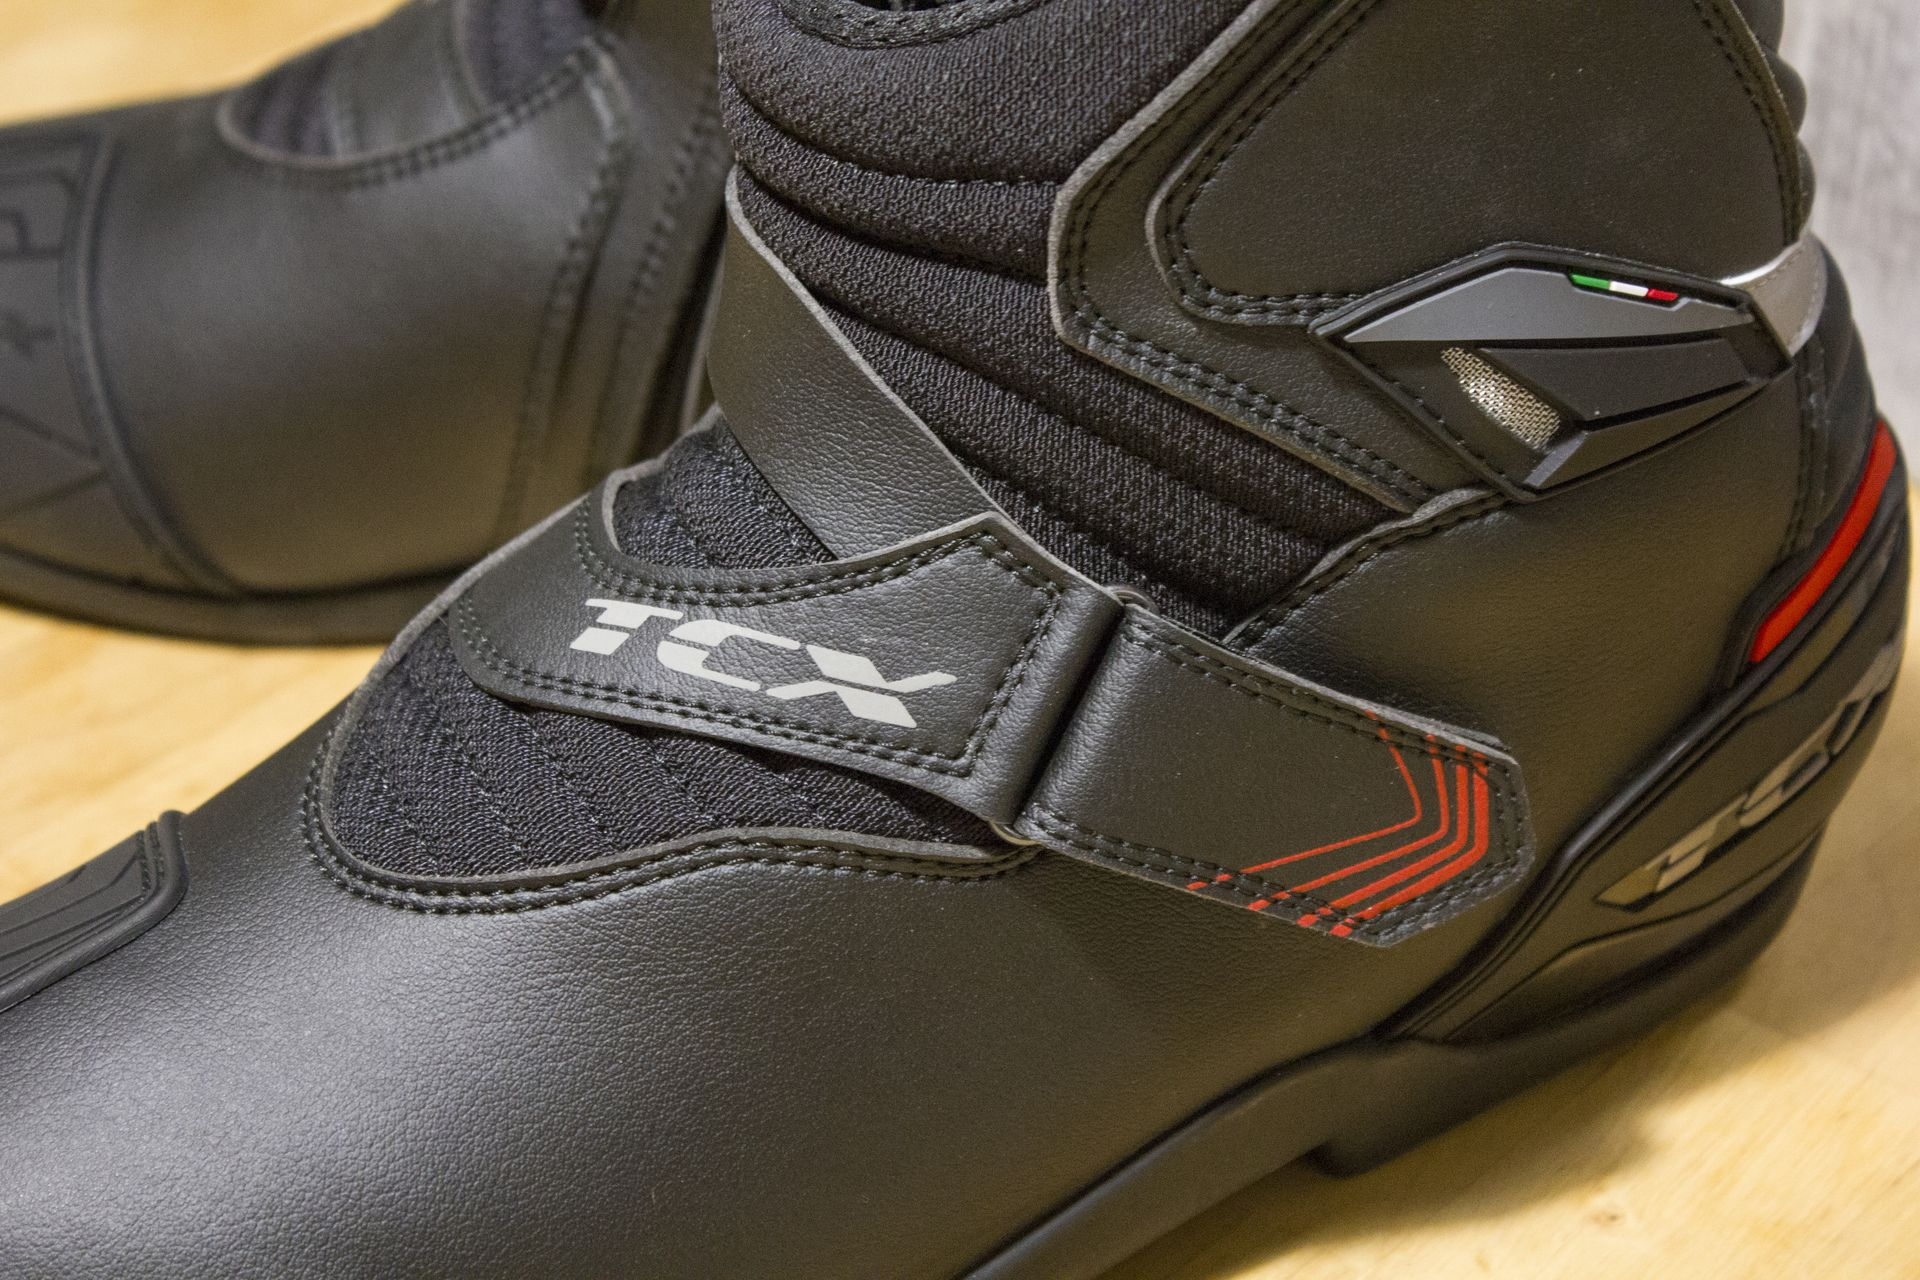 TCX Roadster 2 - sangle velcro au cou-de-pied